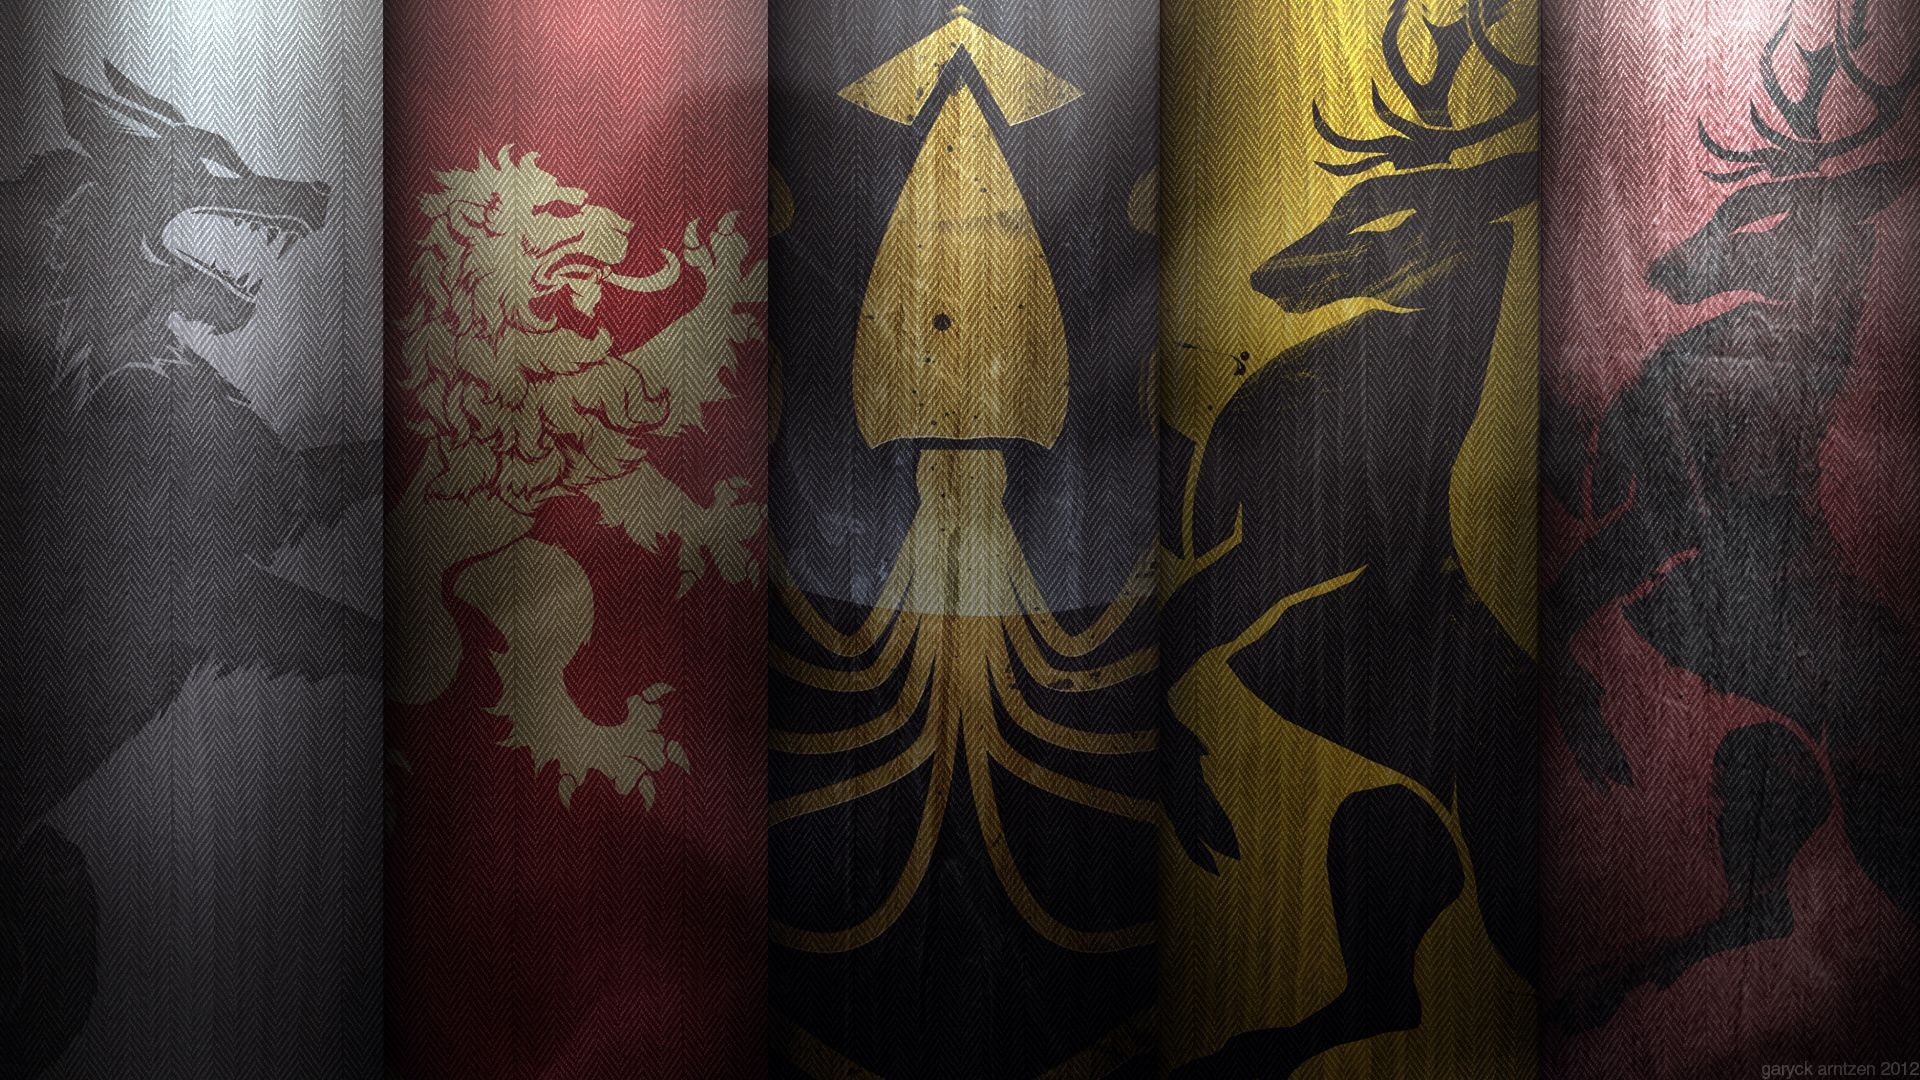 Game Of Thrones Wallpaper 1080p Ipad Mini Wallpaper Game Of Thrones Merchandise Hd Wallpapers For Laptop